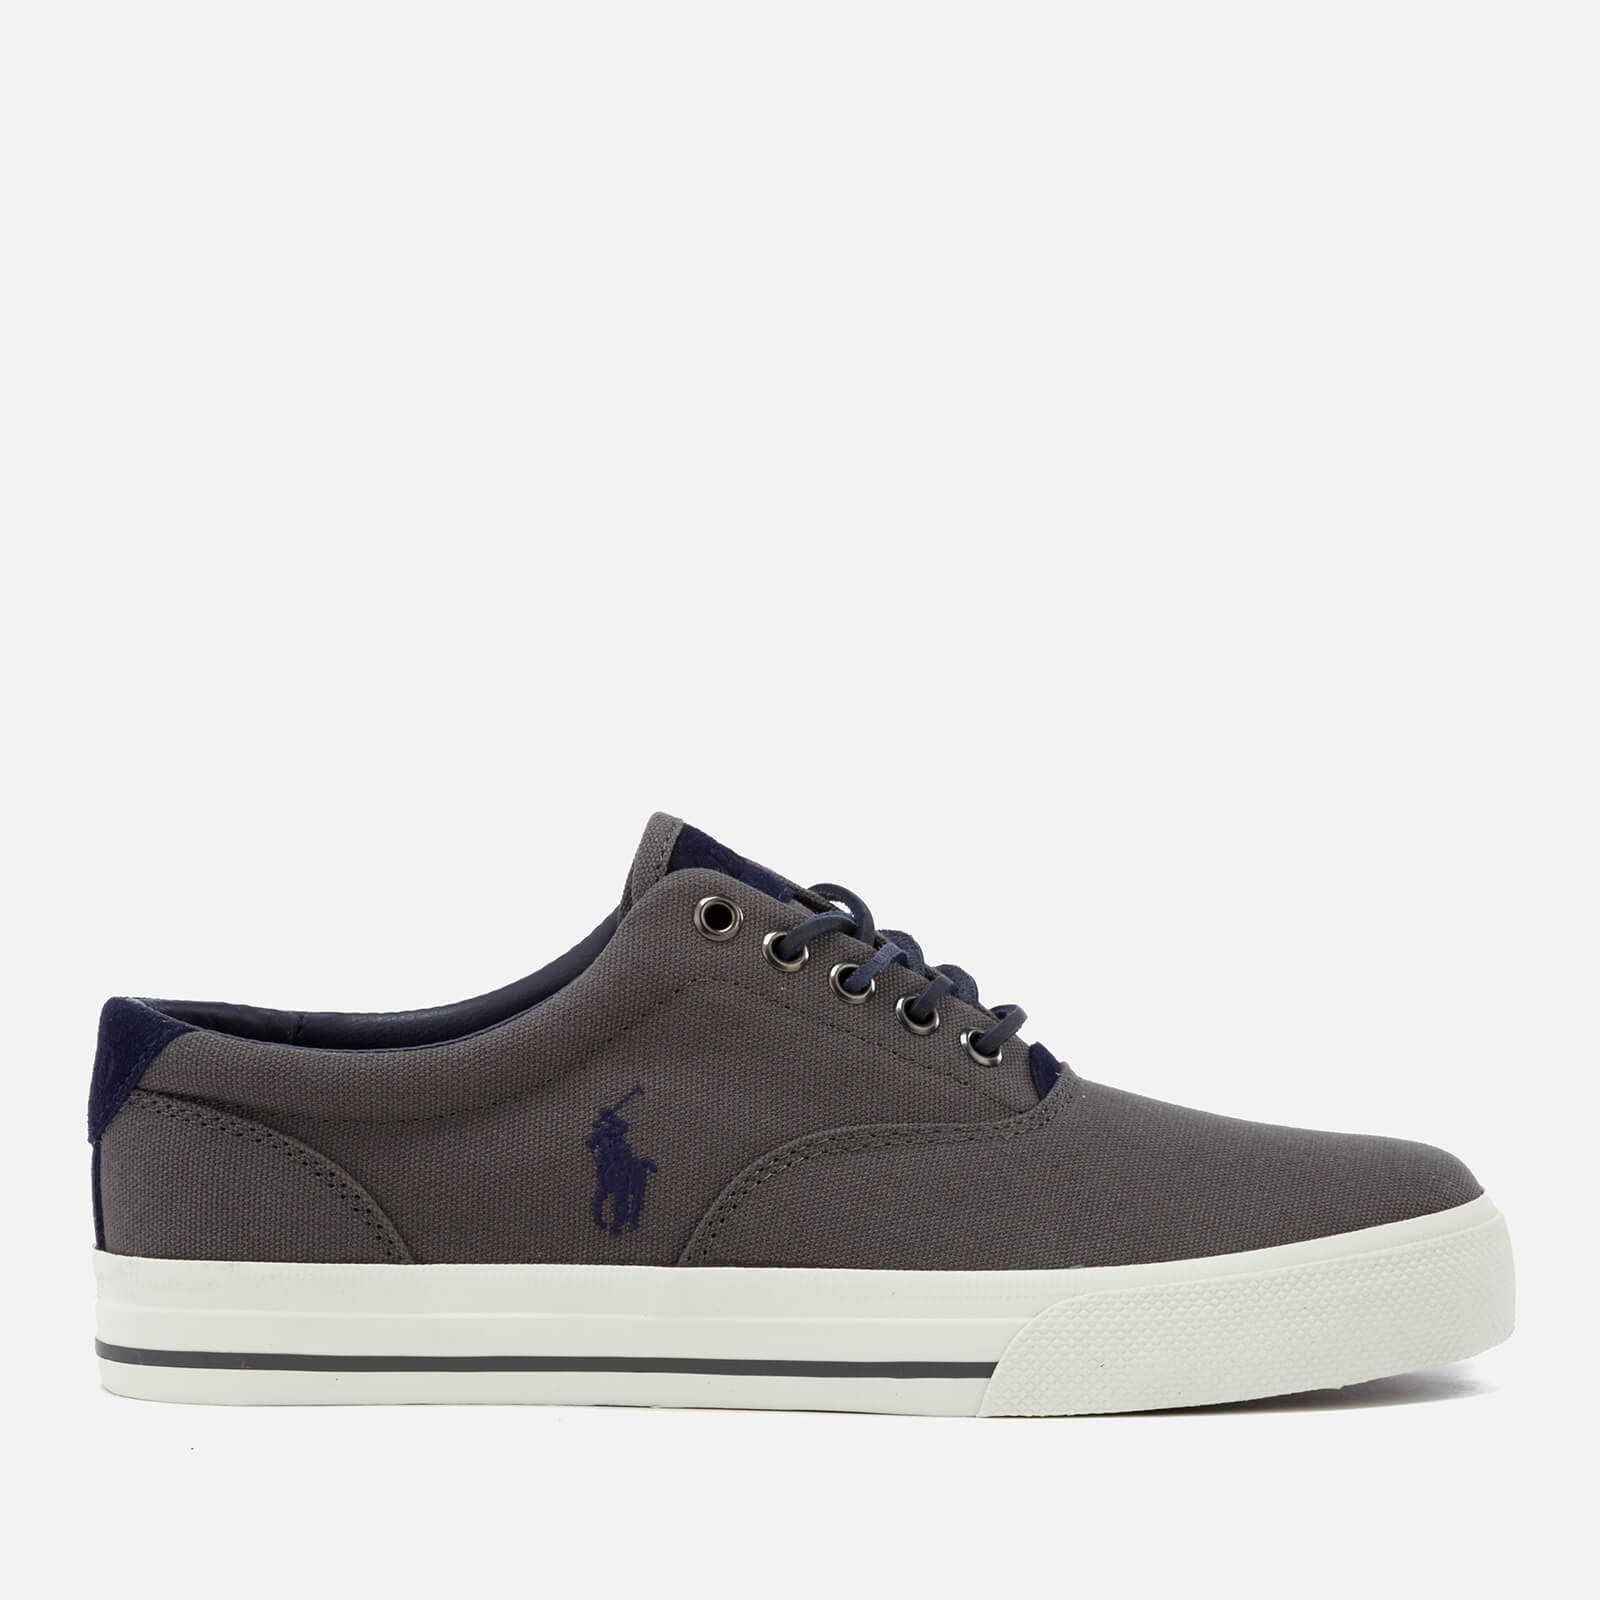 249e465fc920 Polo Ralph Lauren Men s Vaughn Canvas Tattersall Trainers - Coal - Free UK  Delivery over £50